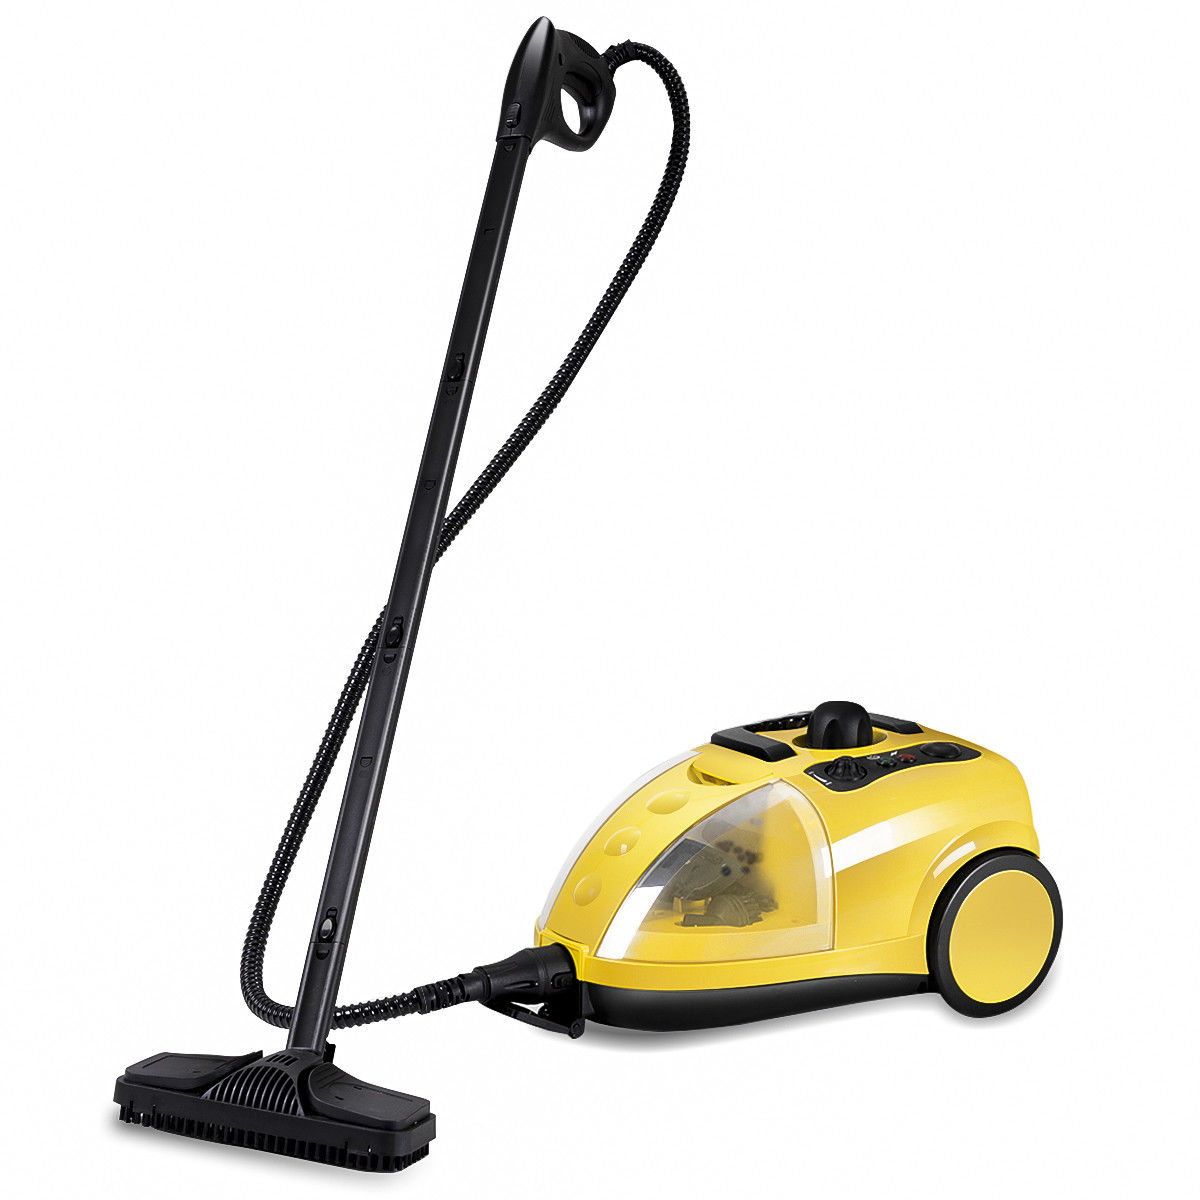 Costway 1500W Heavy Duty Steam Cleaner Mop Multi-Purpose Steam Cleaning 4.0Bar